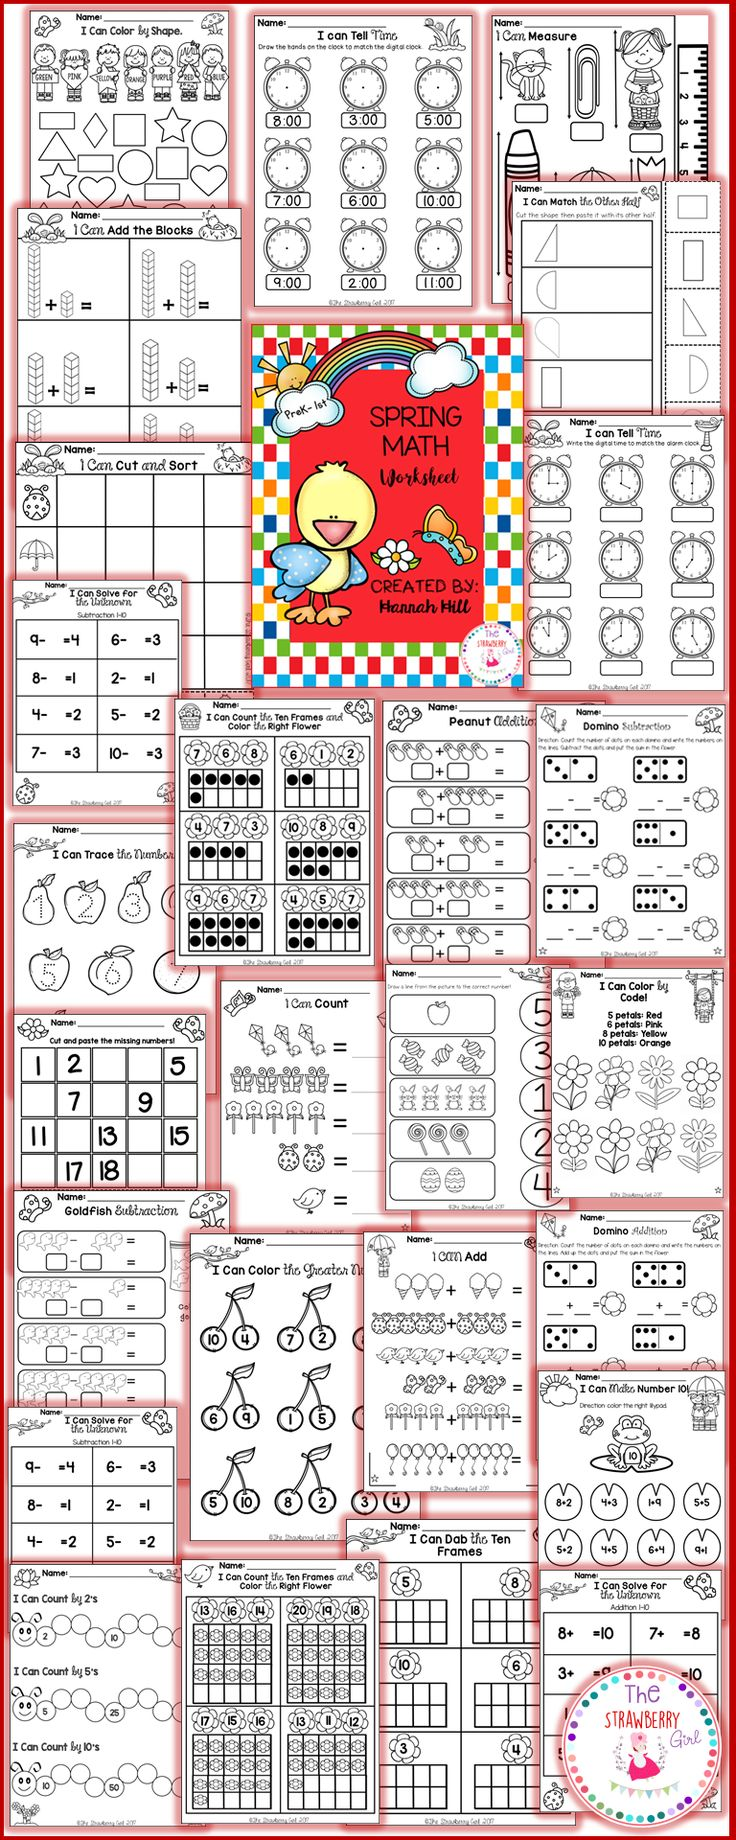 17 best ideas about math worksheets on pinterest free math worksheets first grade math. Black Bedroom Furniture Sets. Home Design Ideas